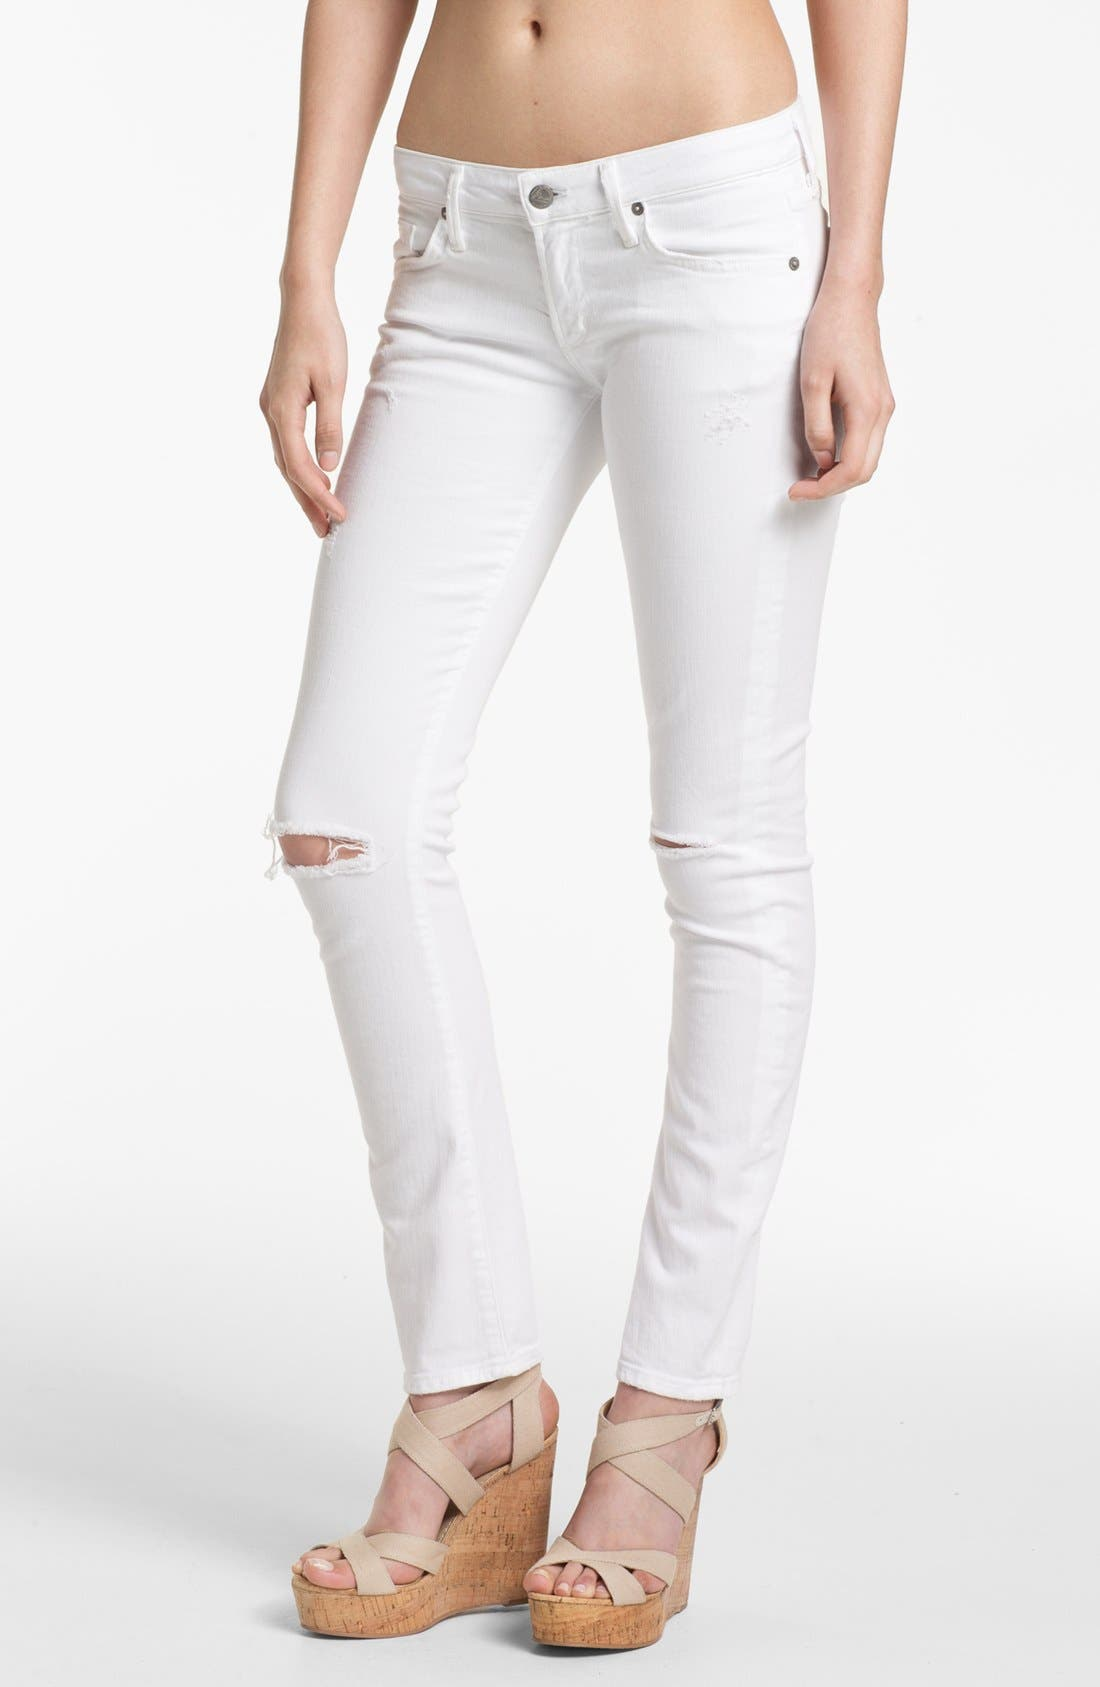 Alternate Image 1 Selected - Citizens of Humanity 'Racer' Distressed Skinny Jeans (Santorini)